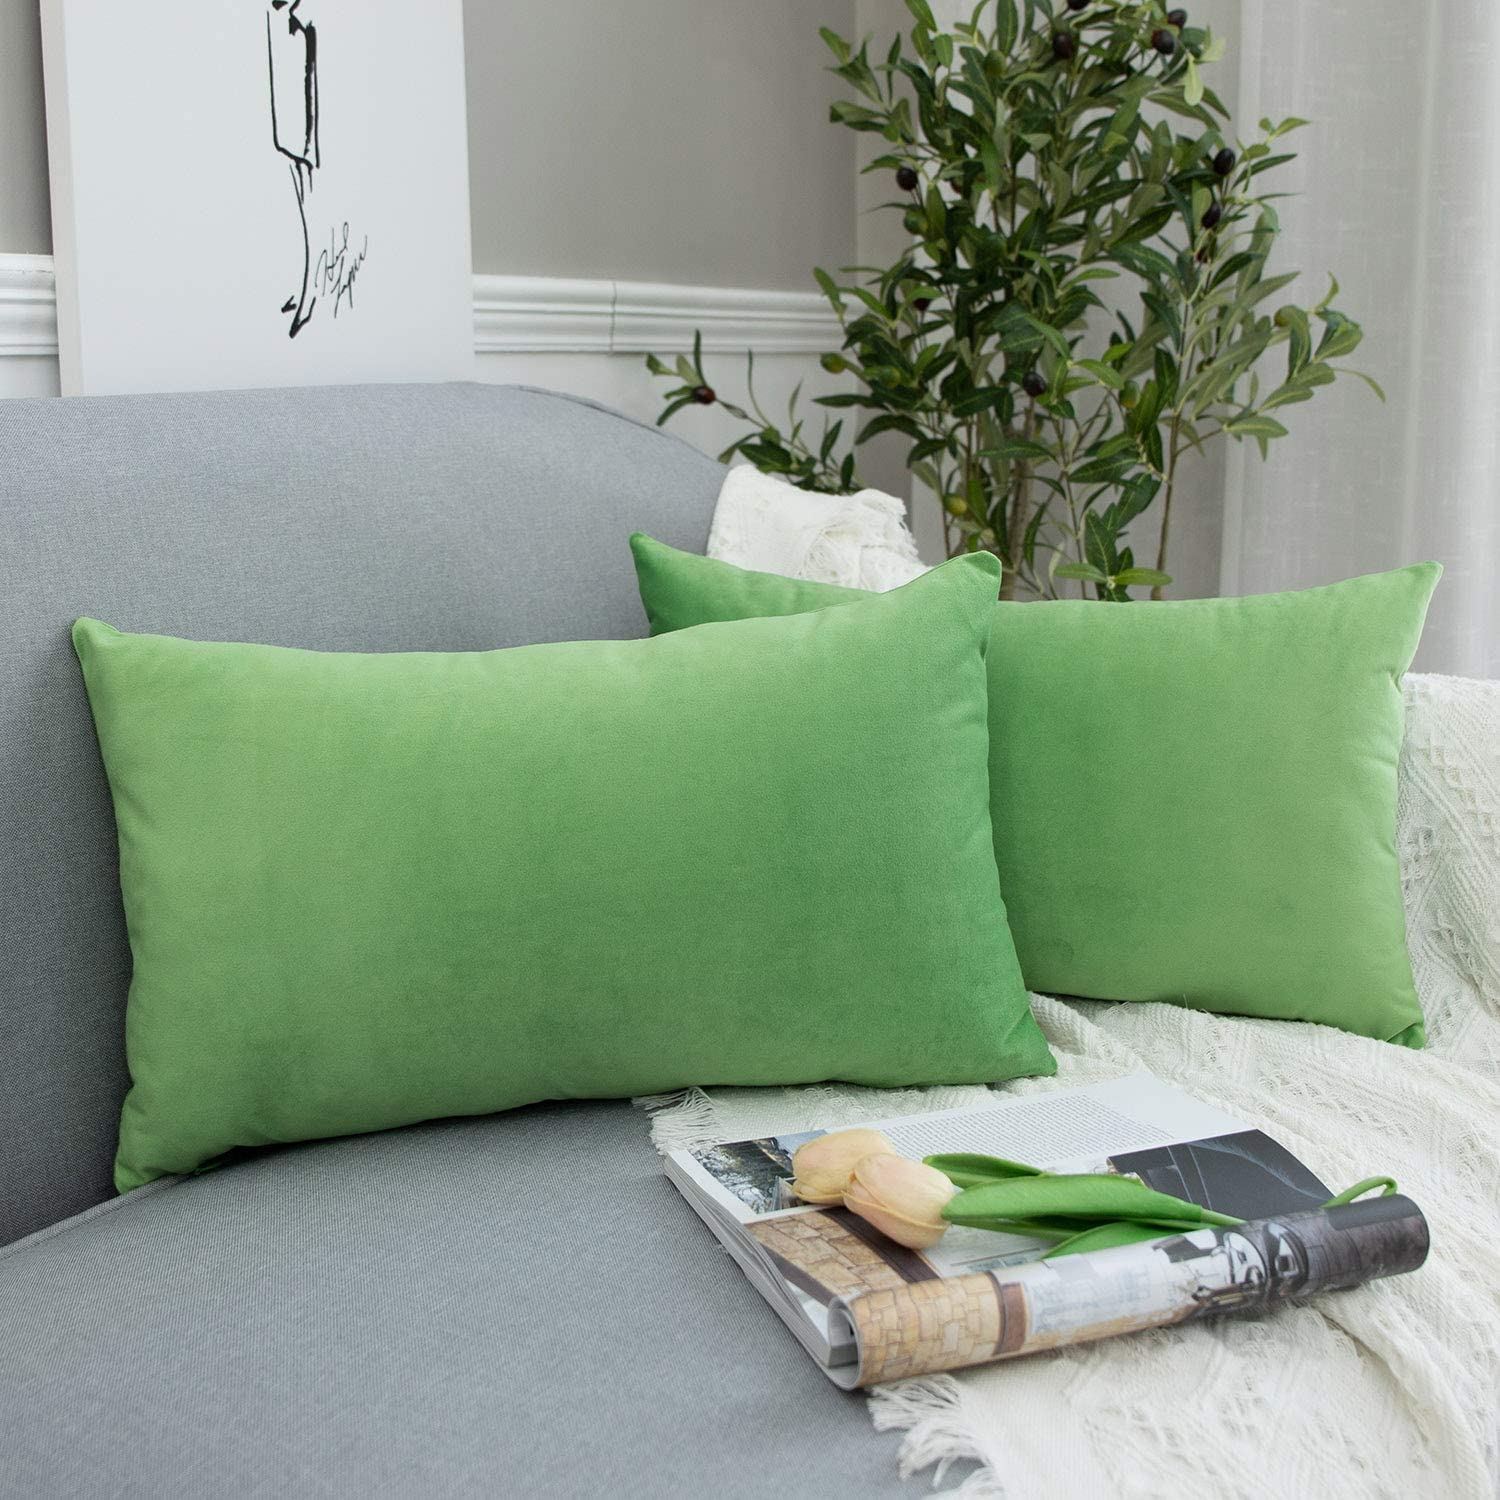 JUSPURBET Apple Green Decorative Velvet Throw Pillow Covers 16x24,Pack of 2 Luxury Soft Solid Cushion Cases for Sofa Couch Bed